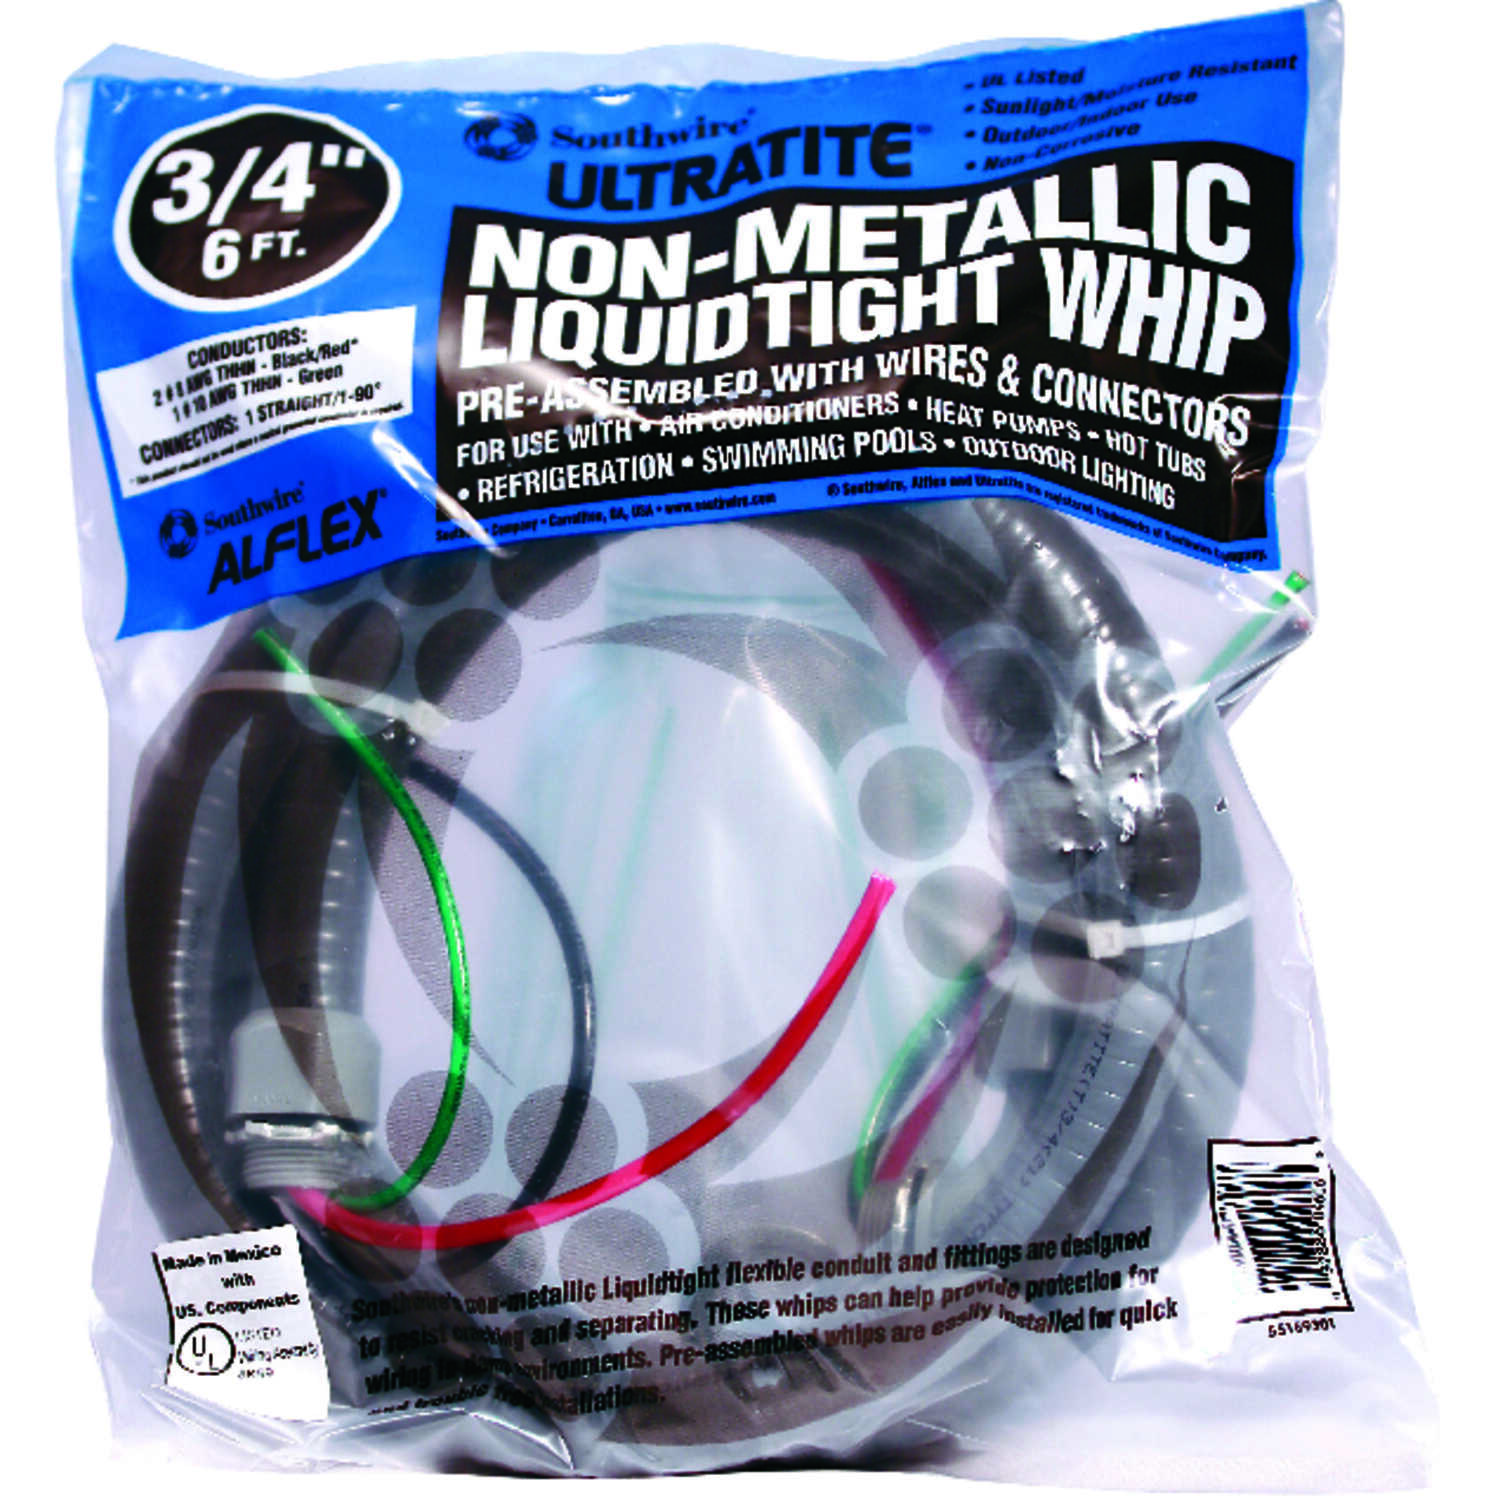 Southwire Cable Whip 3/4 in. x 6 ft. 8 Ga, 2 Conductor 6 ft.